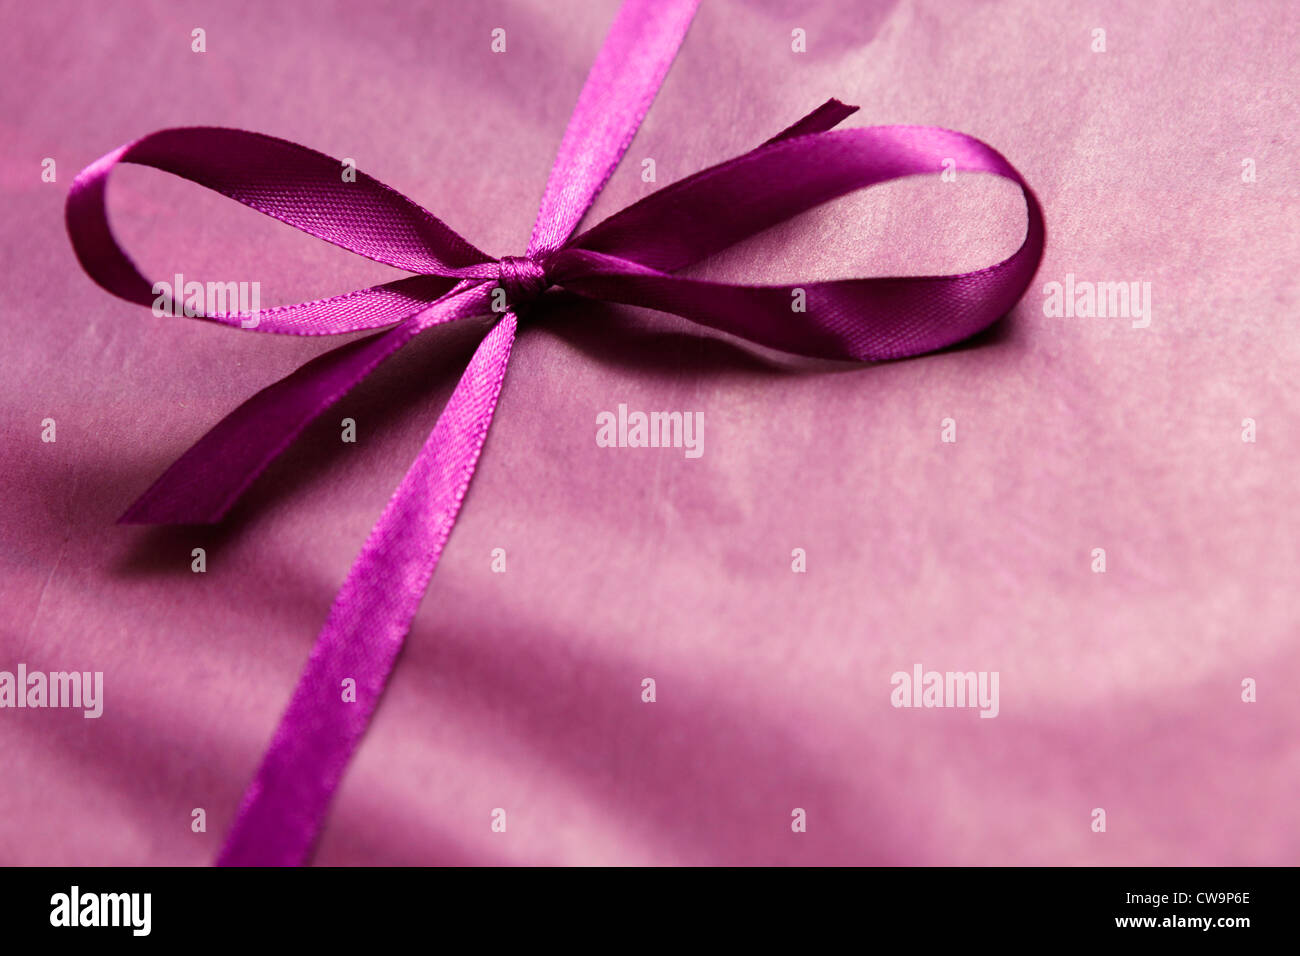 A gift wrapped in purple tissue paper and satin bow - Stock Image